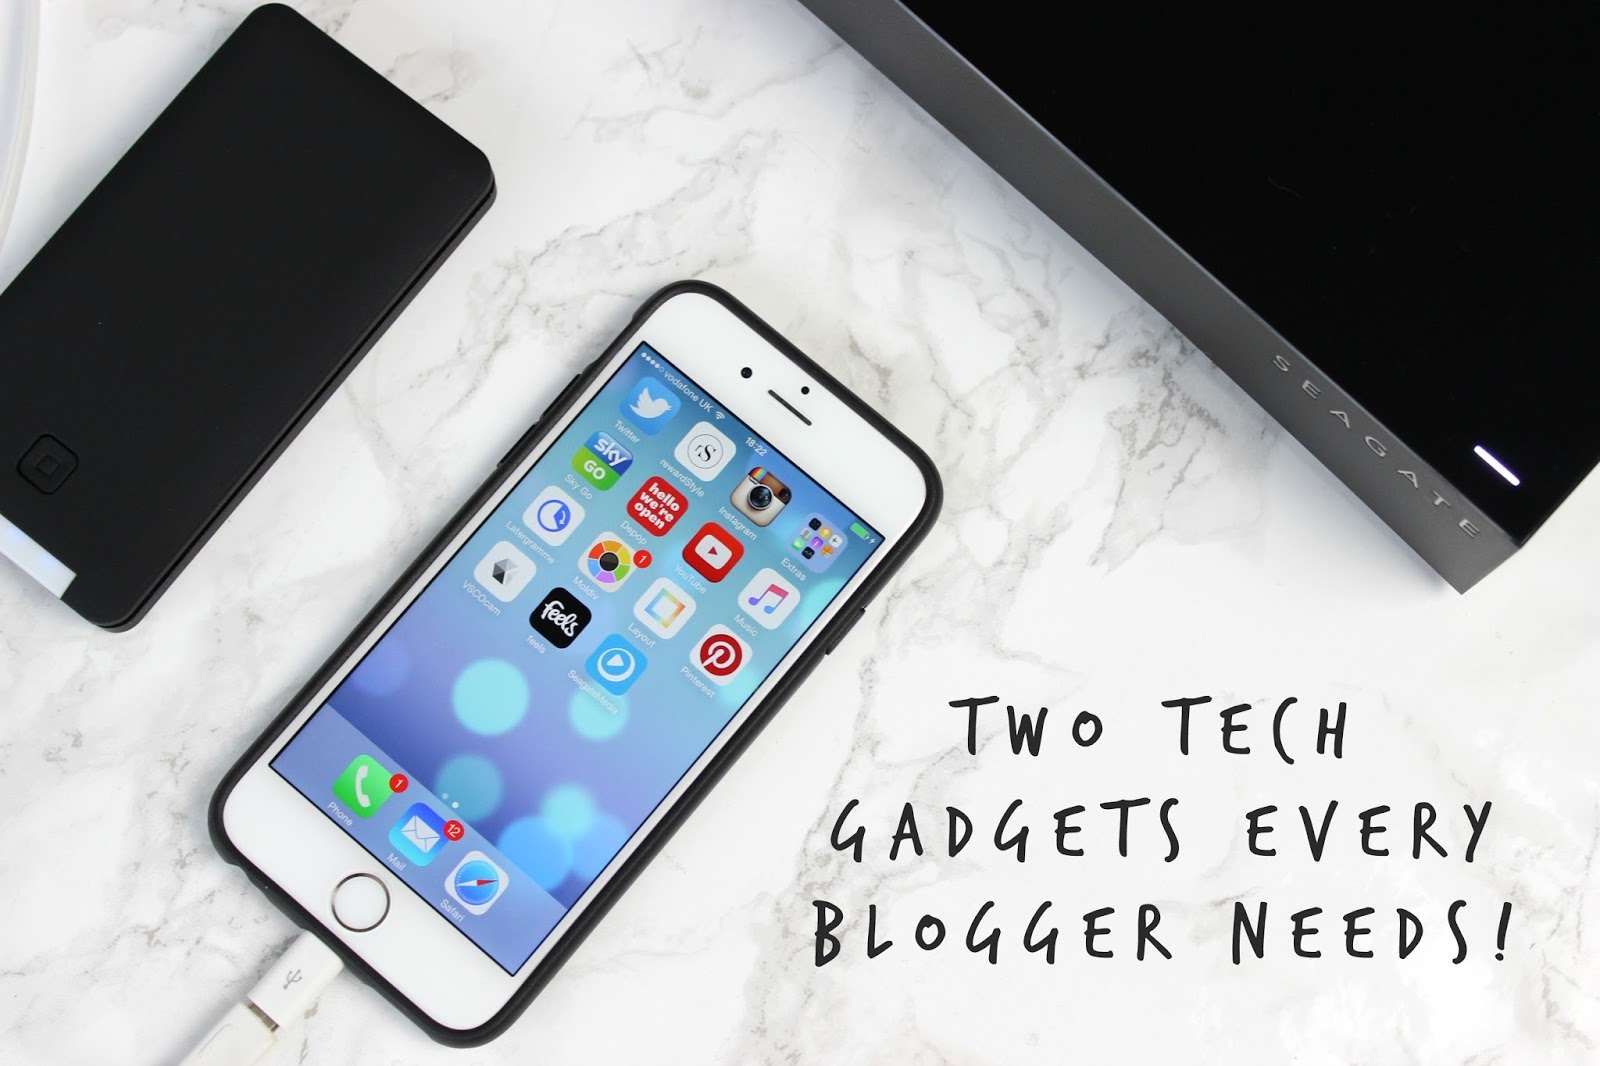 Two tech gadgets every blogger needs